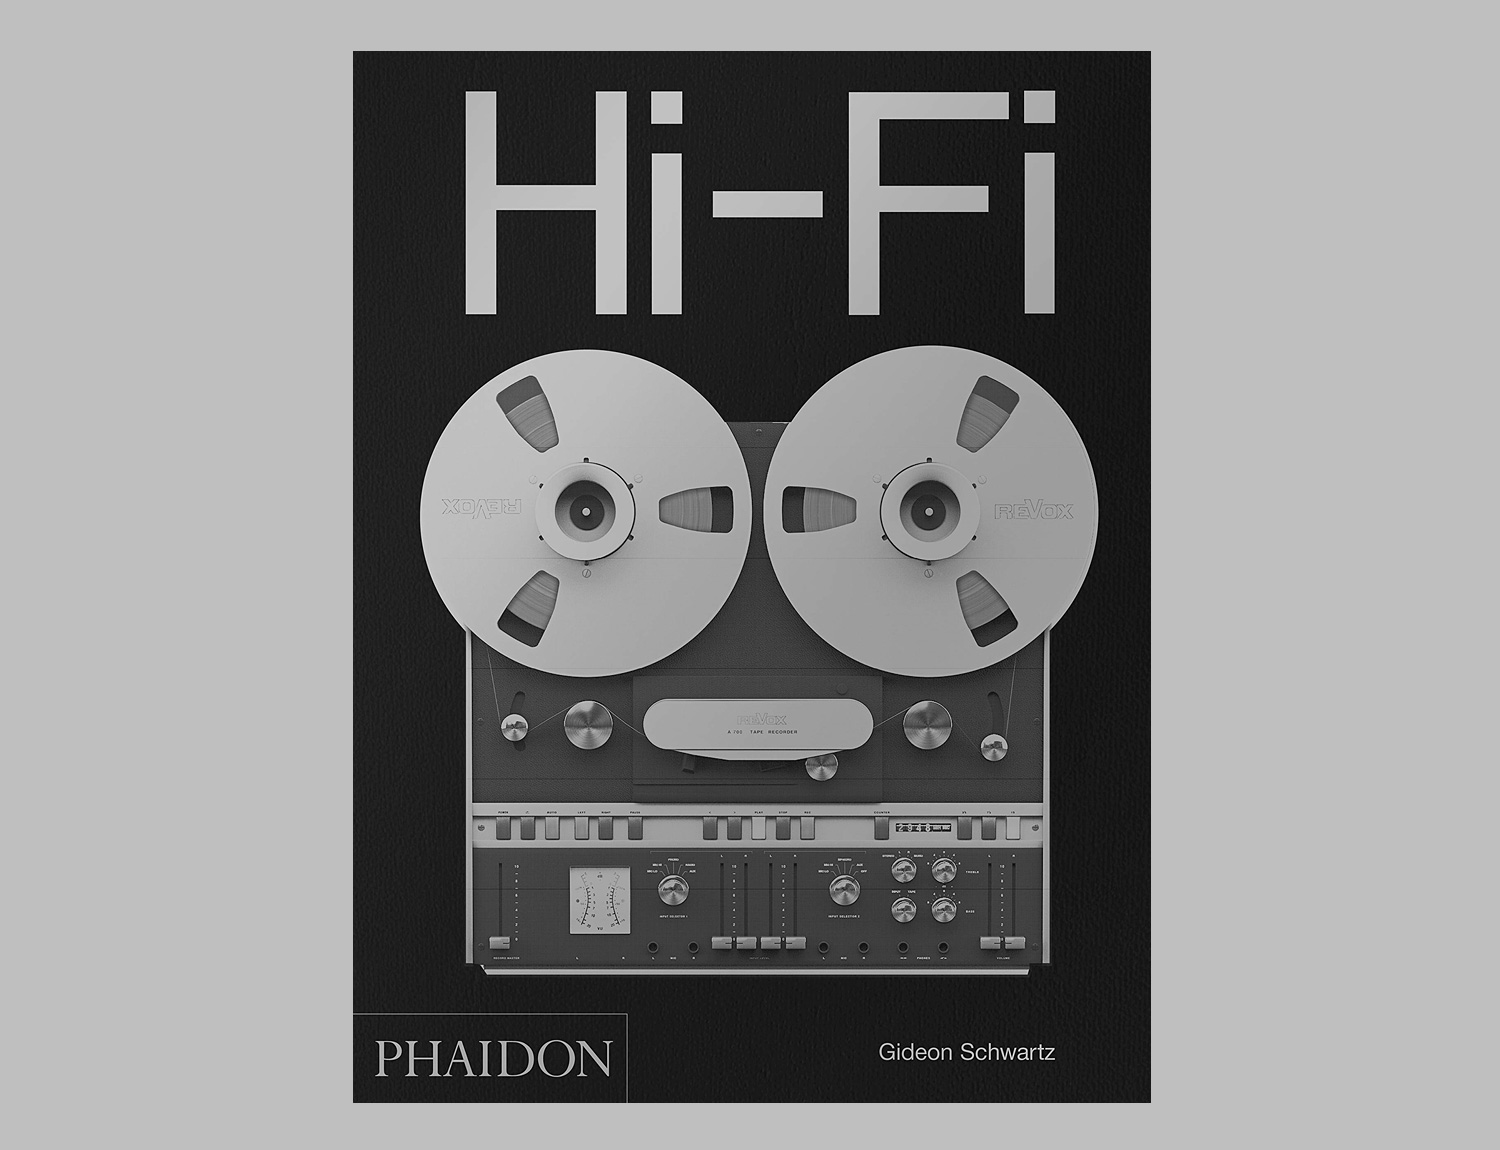 Hi-Fi: The History Of High-End Audio Design at werd.com